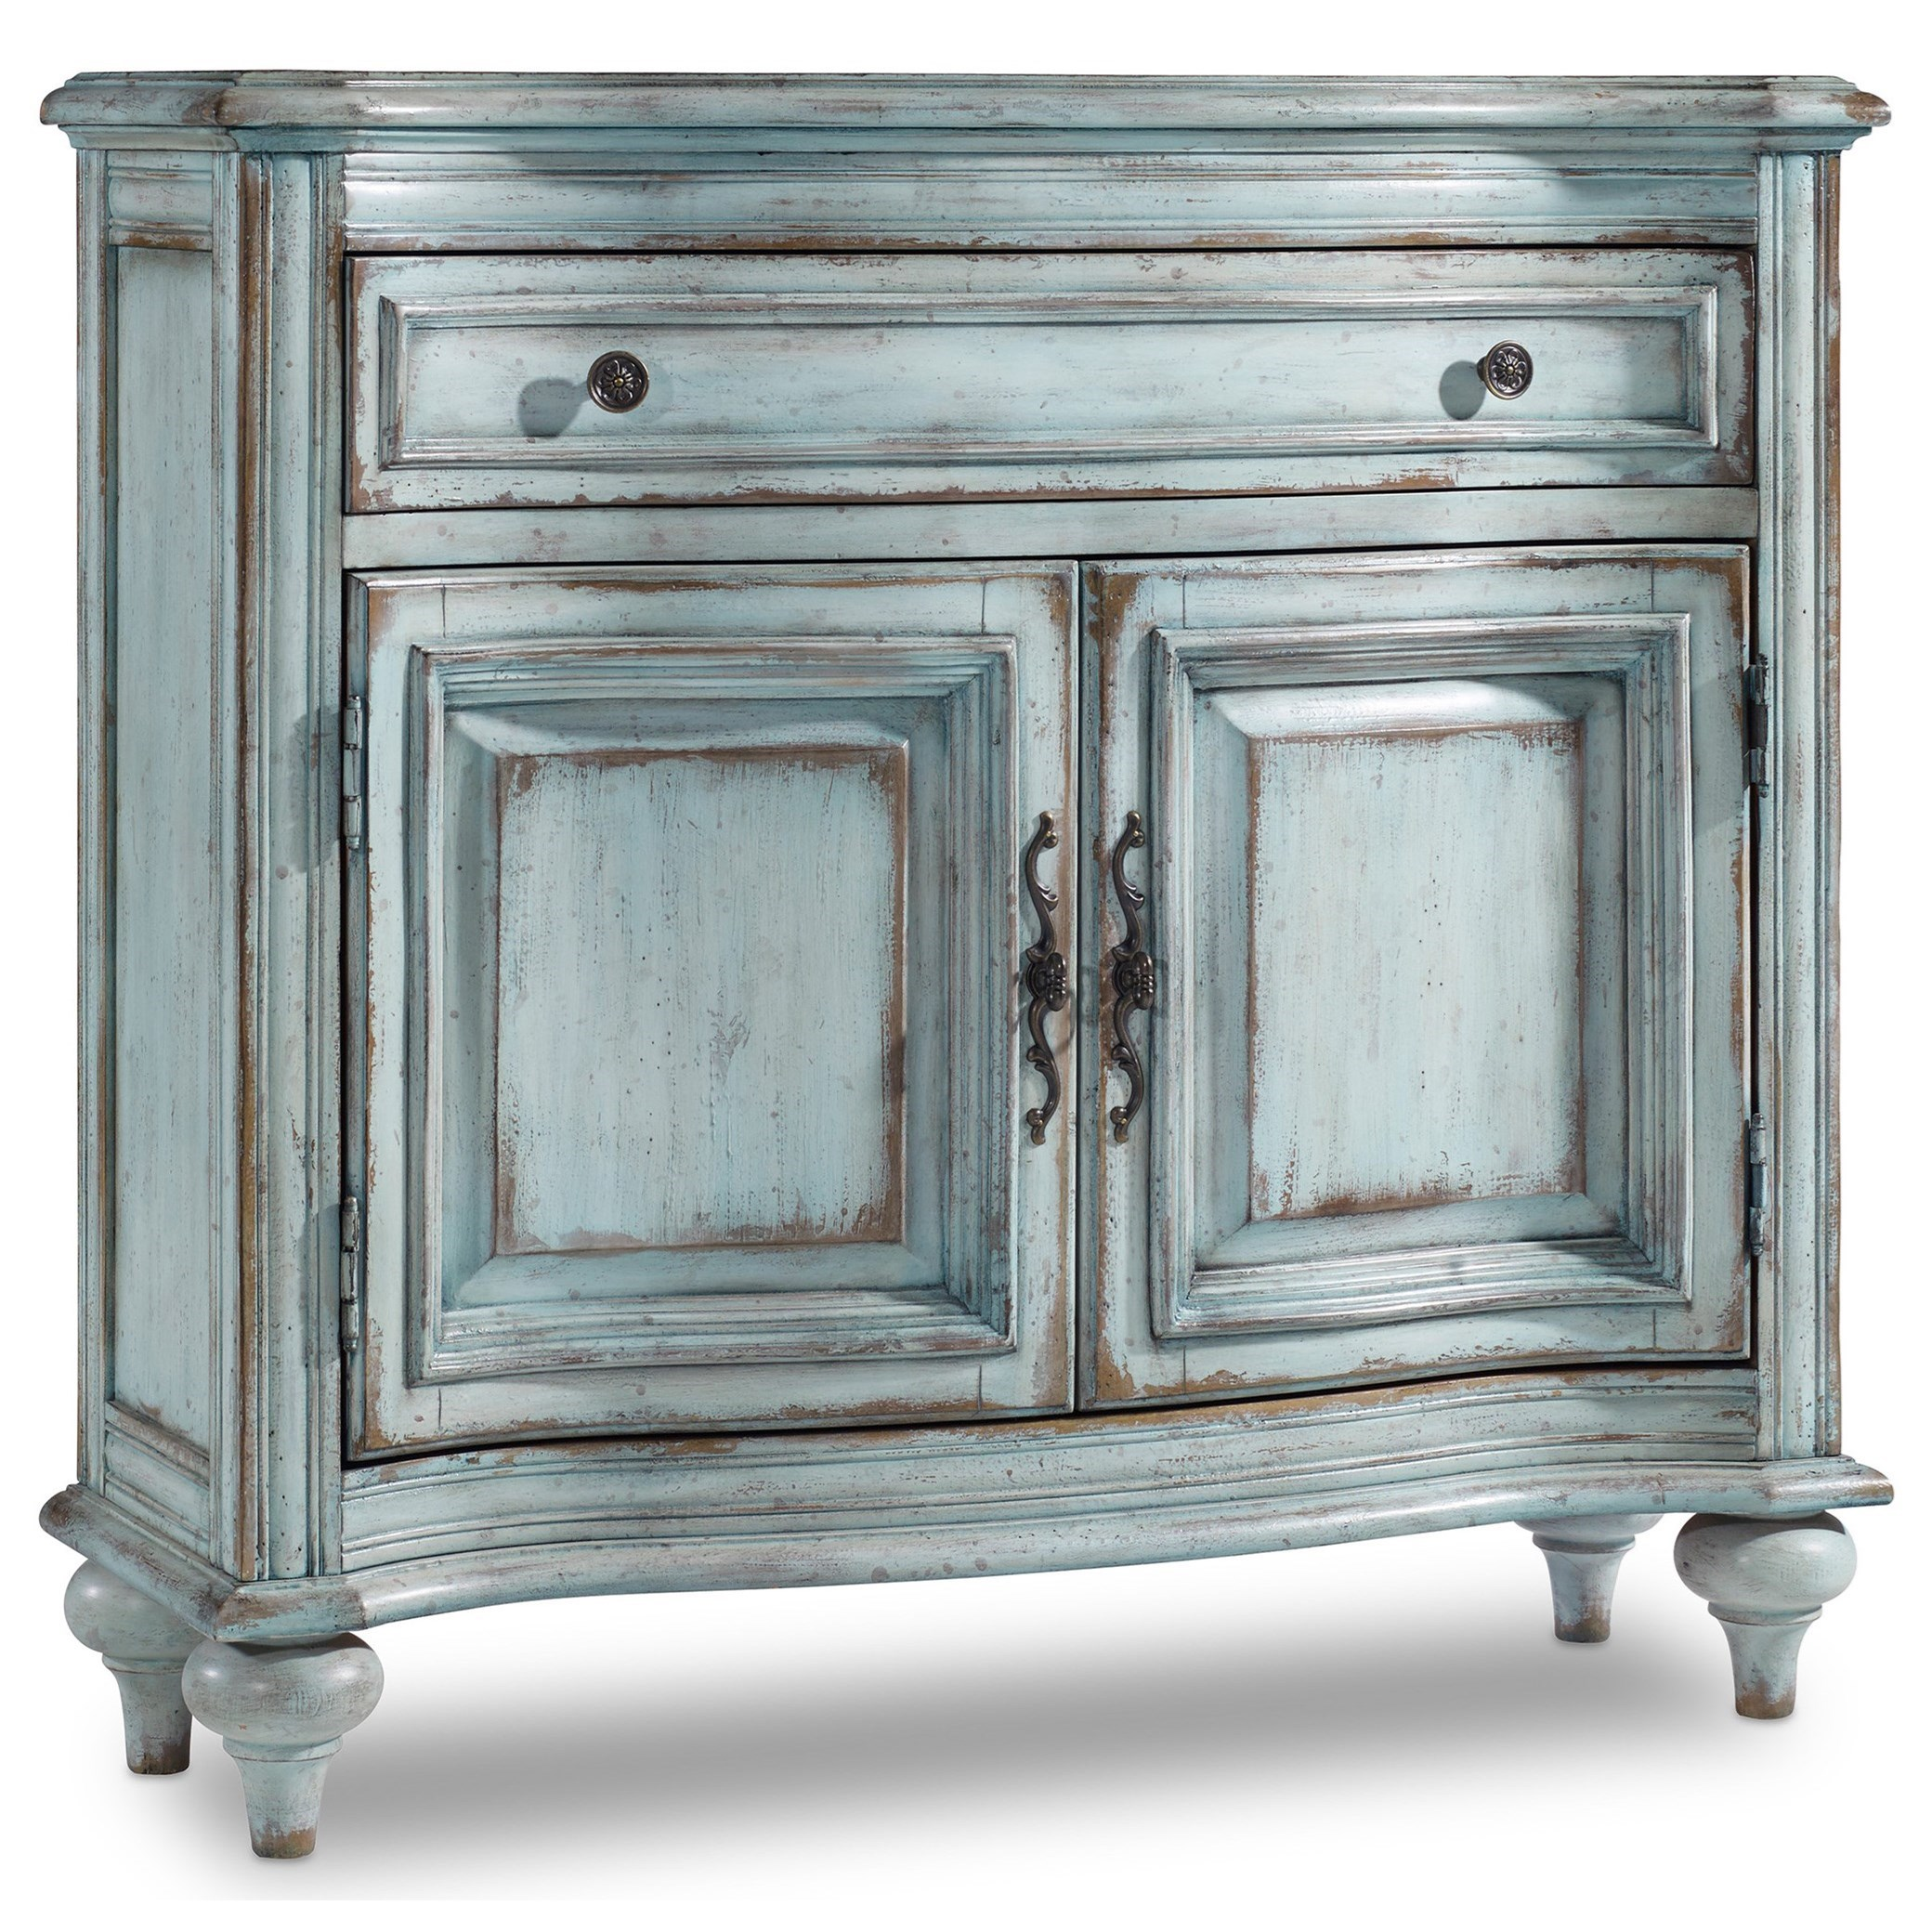 distressed blue furniture. 1-Drawer 2-Door Chest In Distressed Blue Finish Furniture I